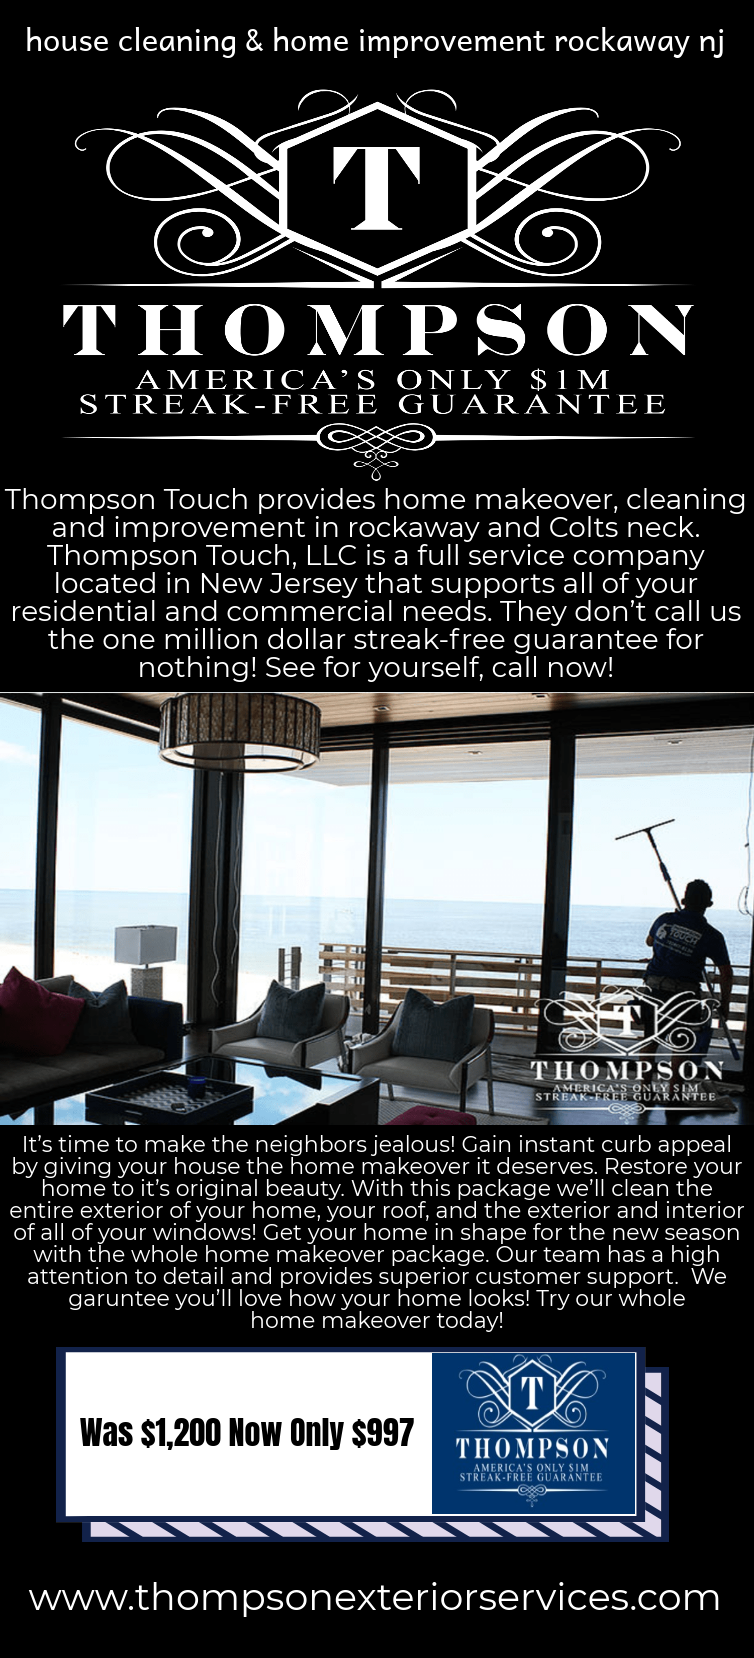 Thompson Touch Provides Home Makeover Cleaning And Improvement In Rockaway And Colts Neck Thompson Touch Llc Is A Full Service Clean House Home Improvement Cleaning